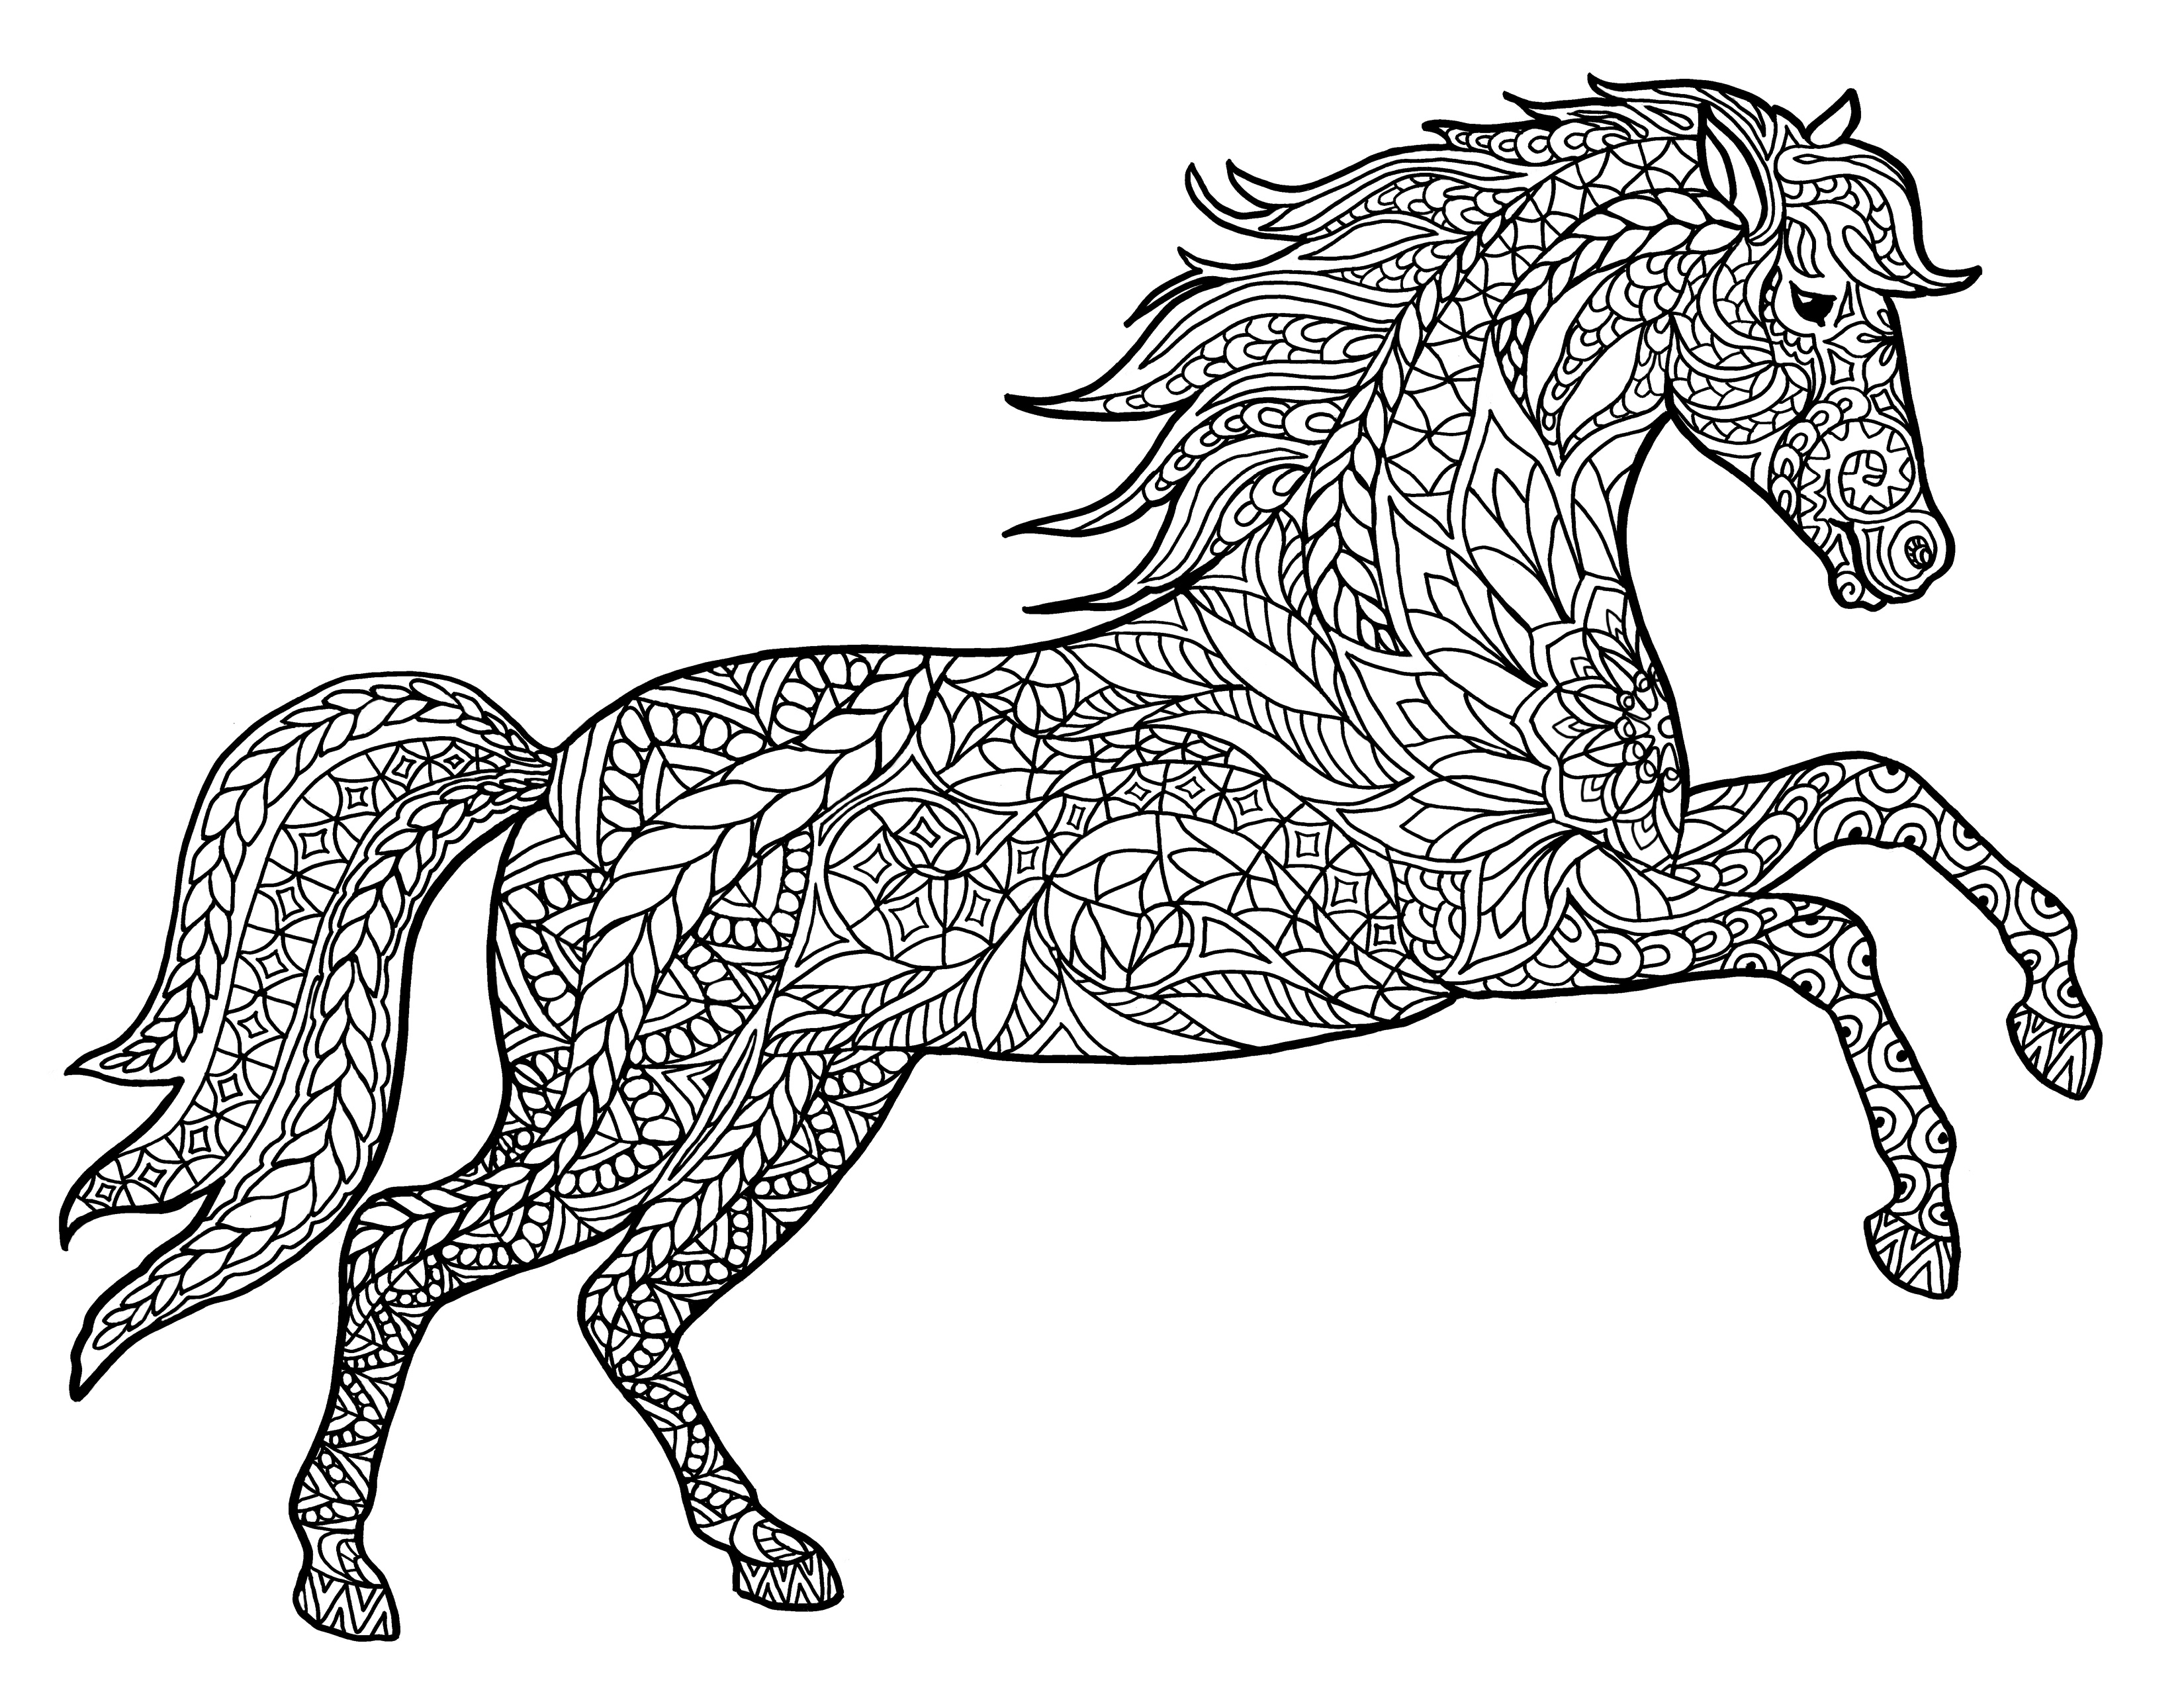 horse coloring sheets fun horse coloring pages for your kids printable horse coloring sheets 1 1